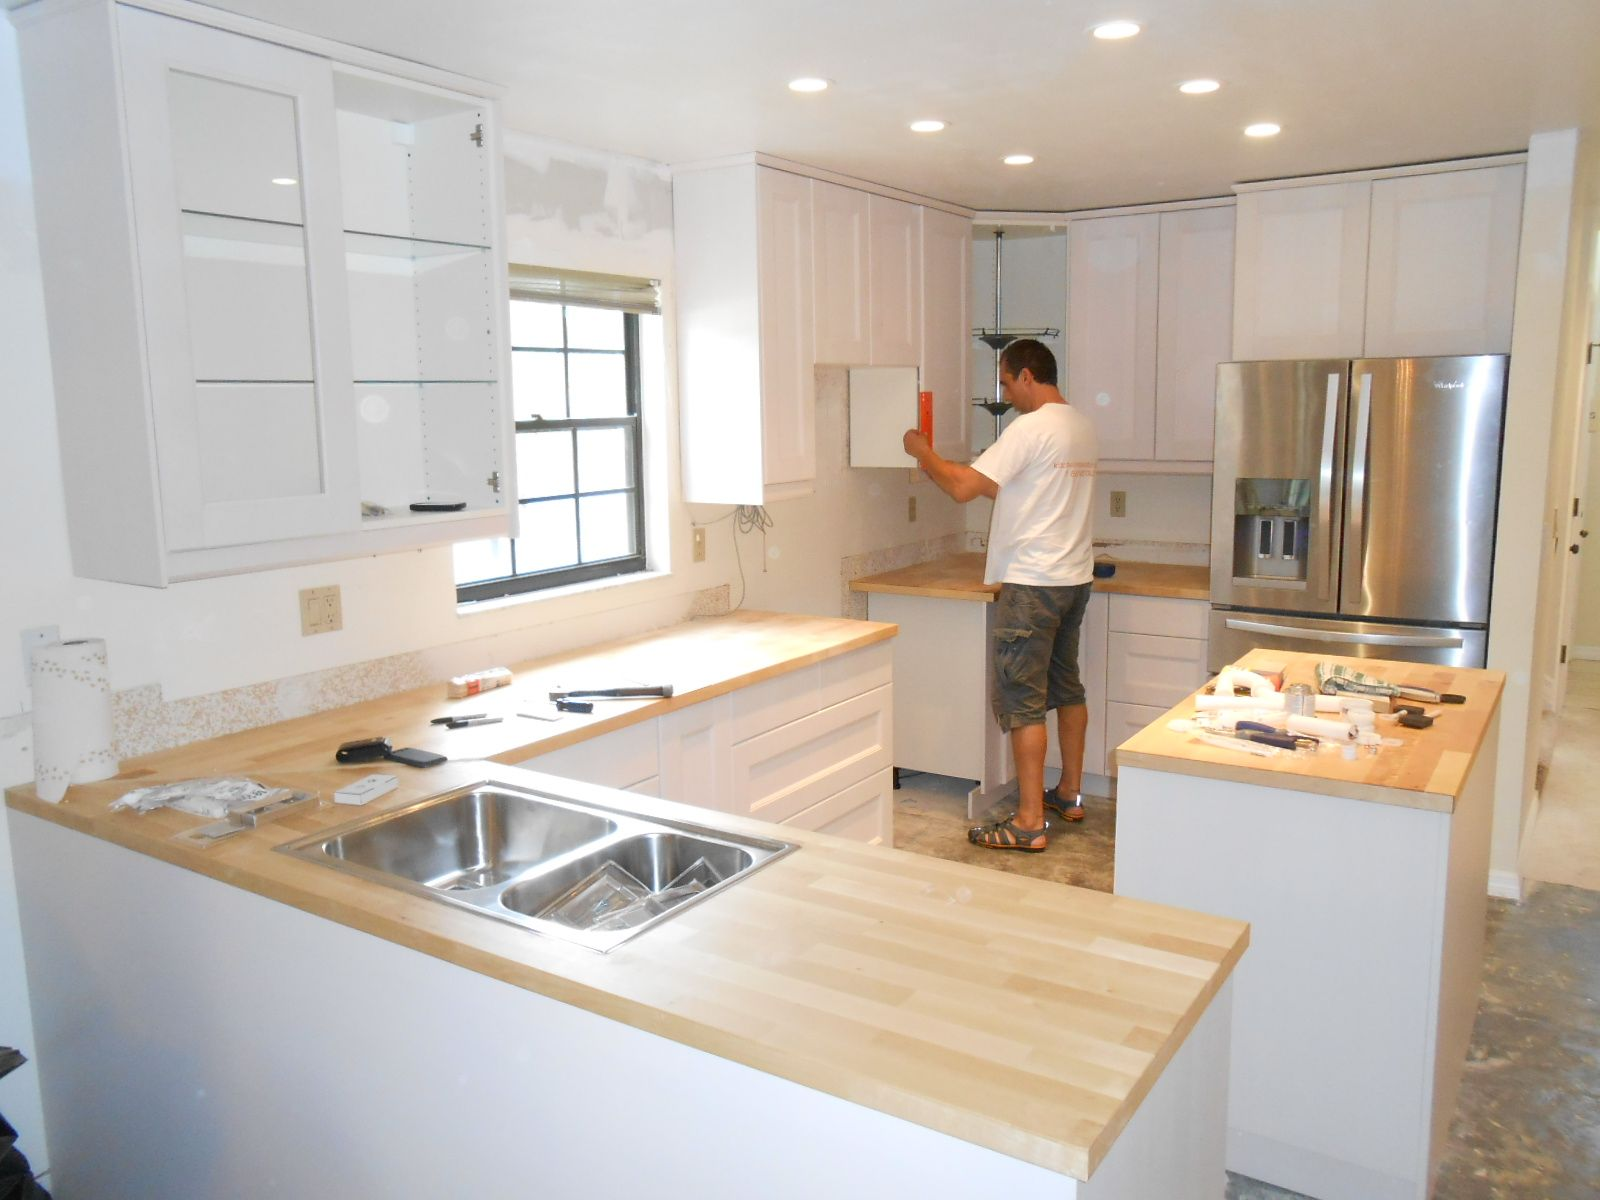 Ikea White Kitchen Cabinets | Join The Discussion On This Ikea Kitchen Cabinets Tritmonk Home